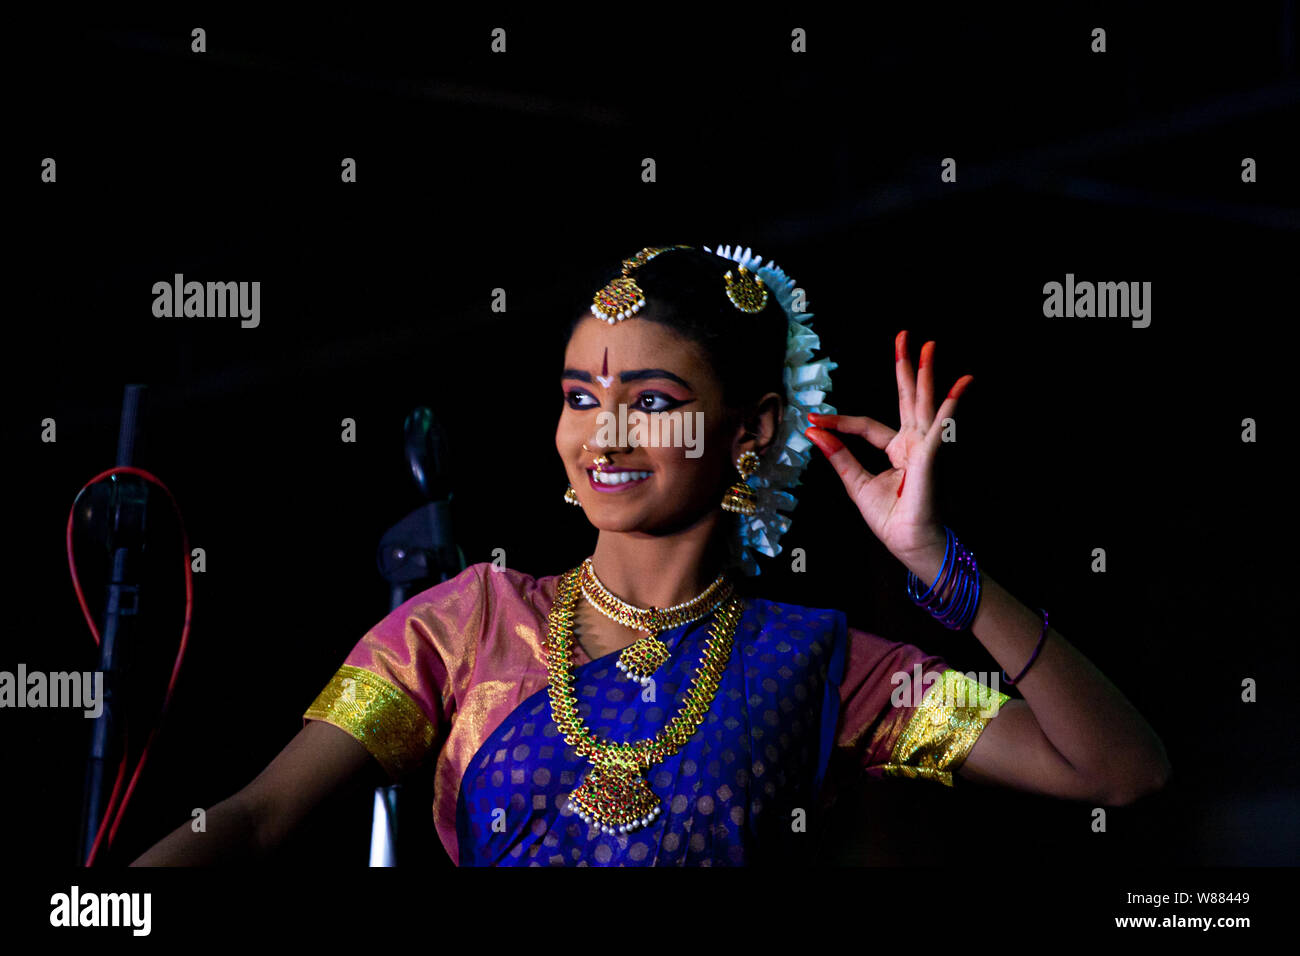 Tamil Nadu Culture Stock Photos & Tamil Nadu Culture Stock